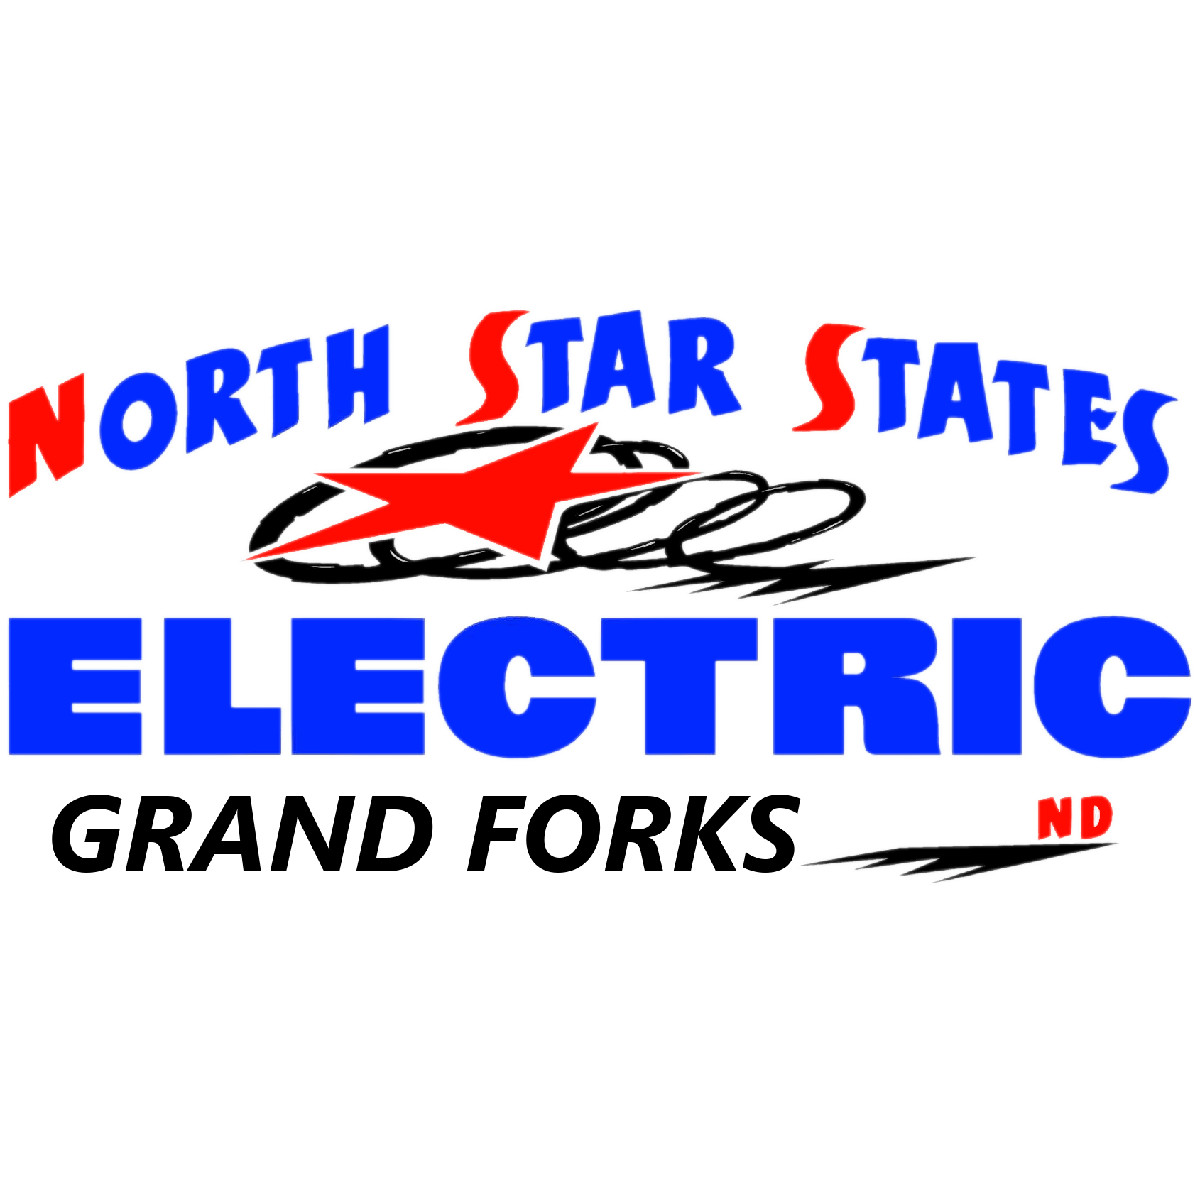 North Star States Electric Master Electrician In Grand Forks